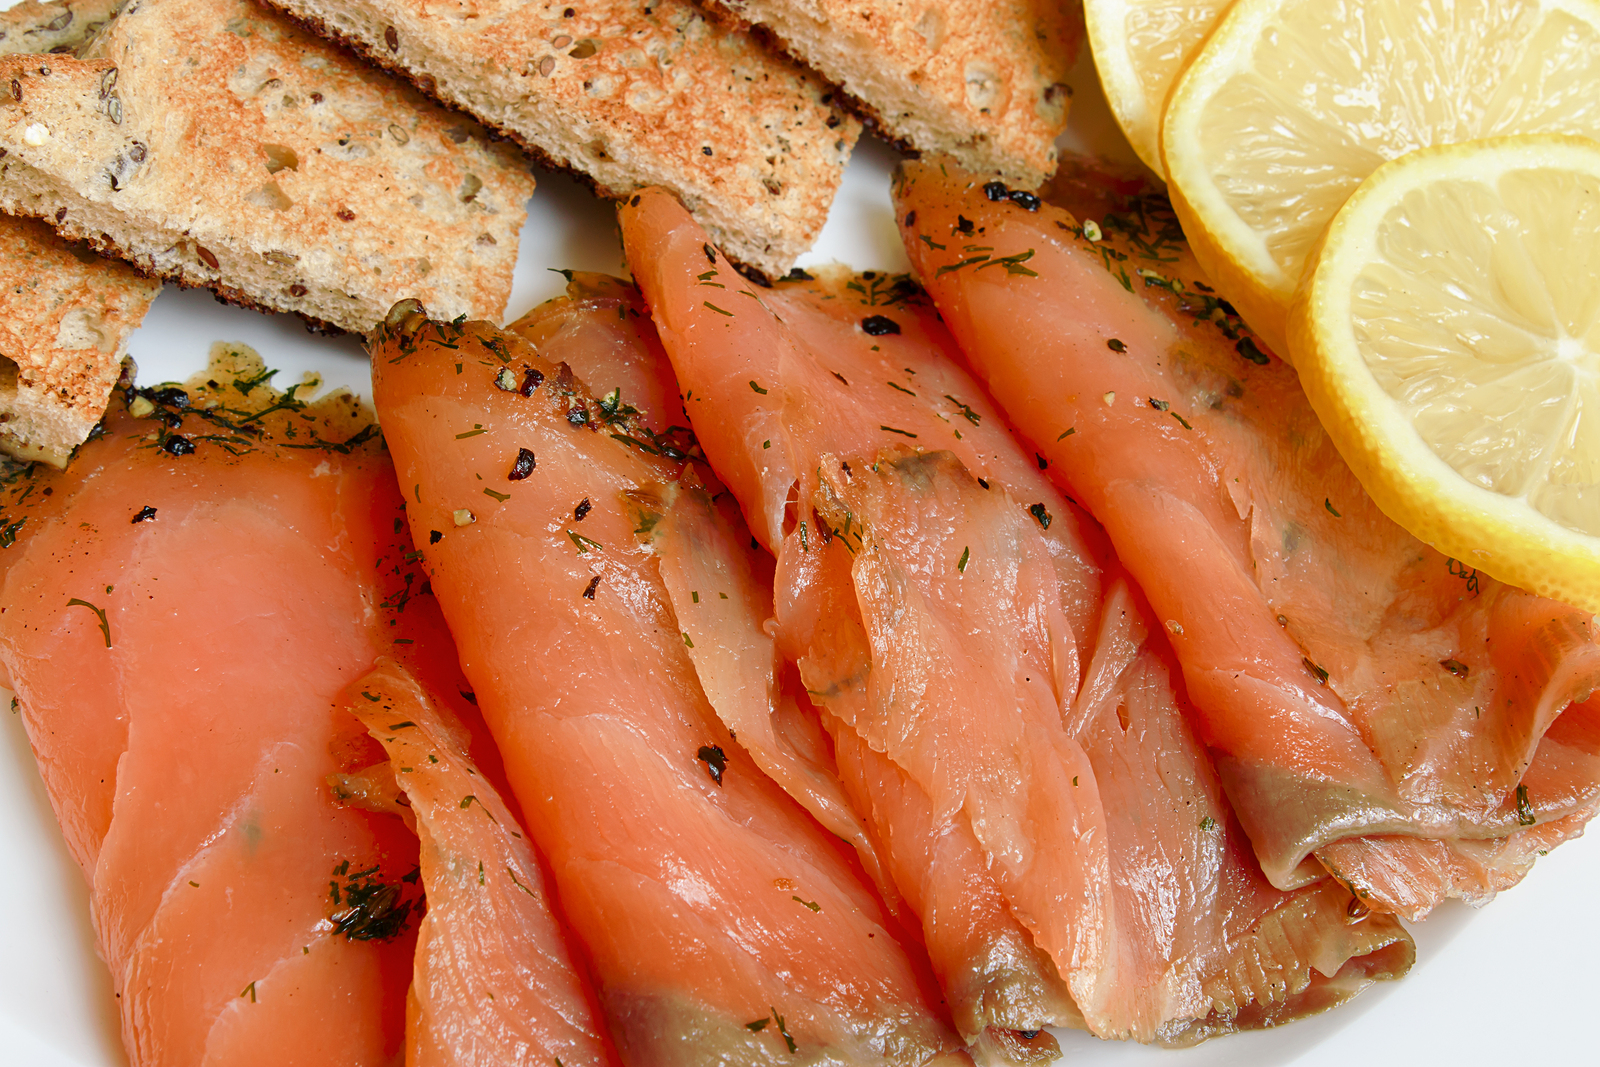 With so much plentiful fishing in Scotland, salmon is a firm favourite; try it oak-smoked on your Scottish tour